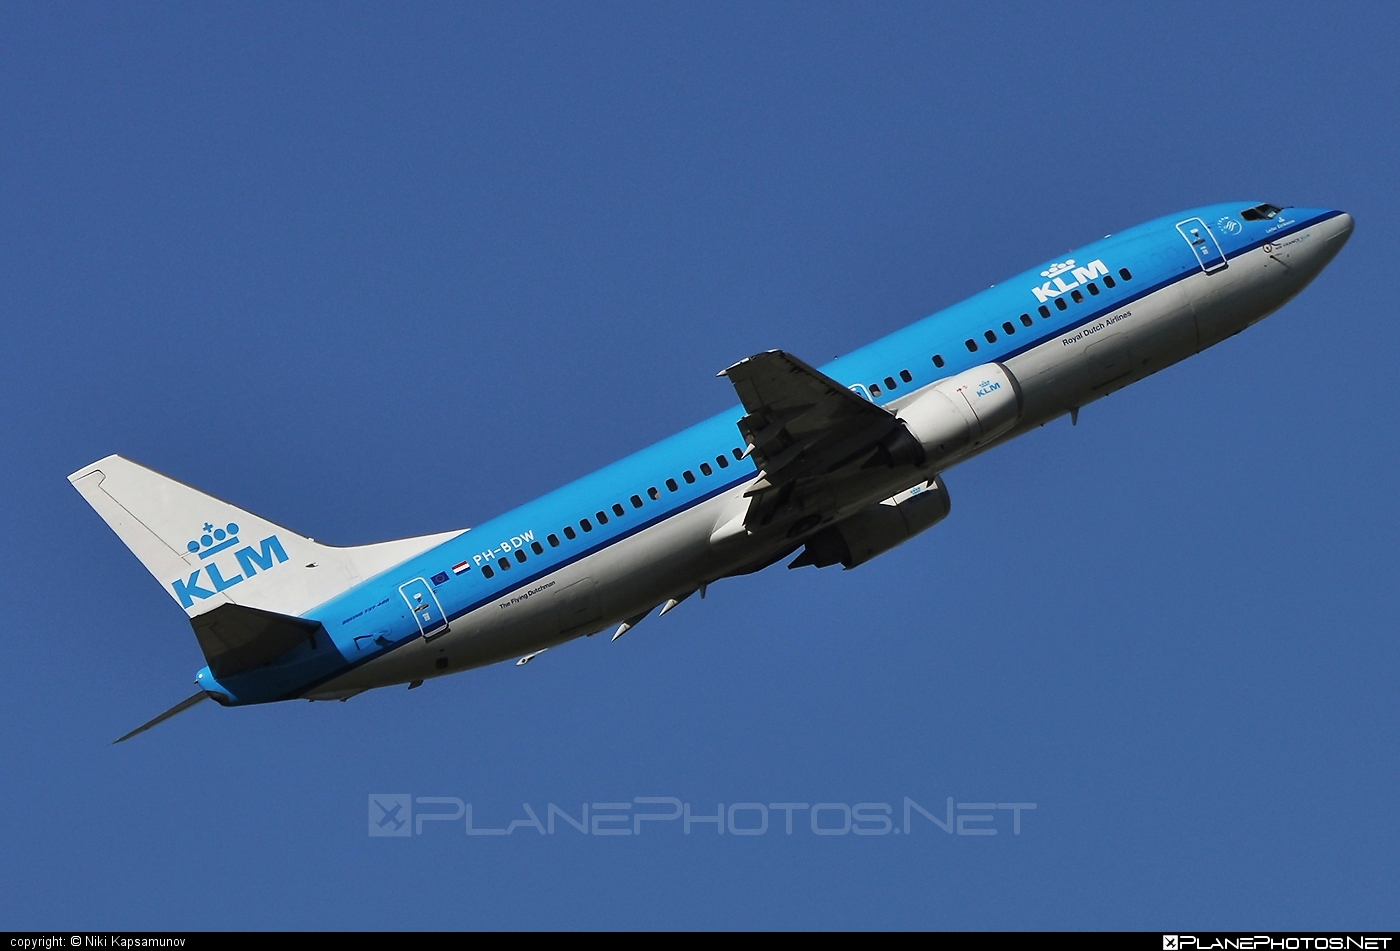 Boeing 737-400 - PH-BDW operated by KLM Royal Dutch Airlines #b737 #boeing #boeing737 #klm #klmroyaldutchairlines #royaldutchairlines